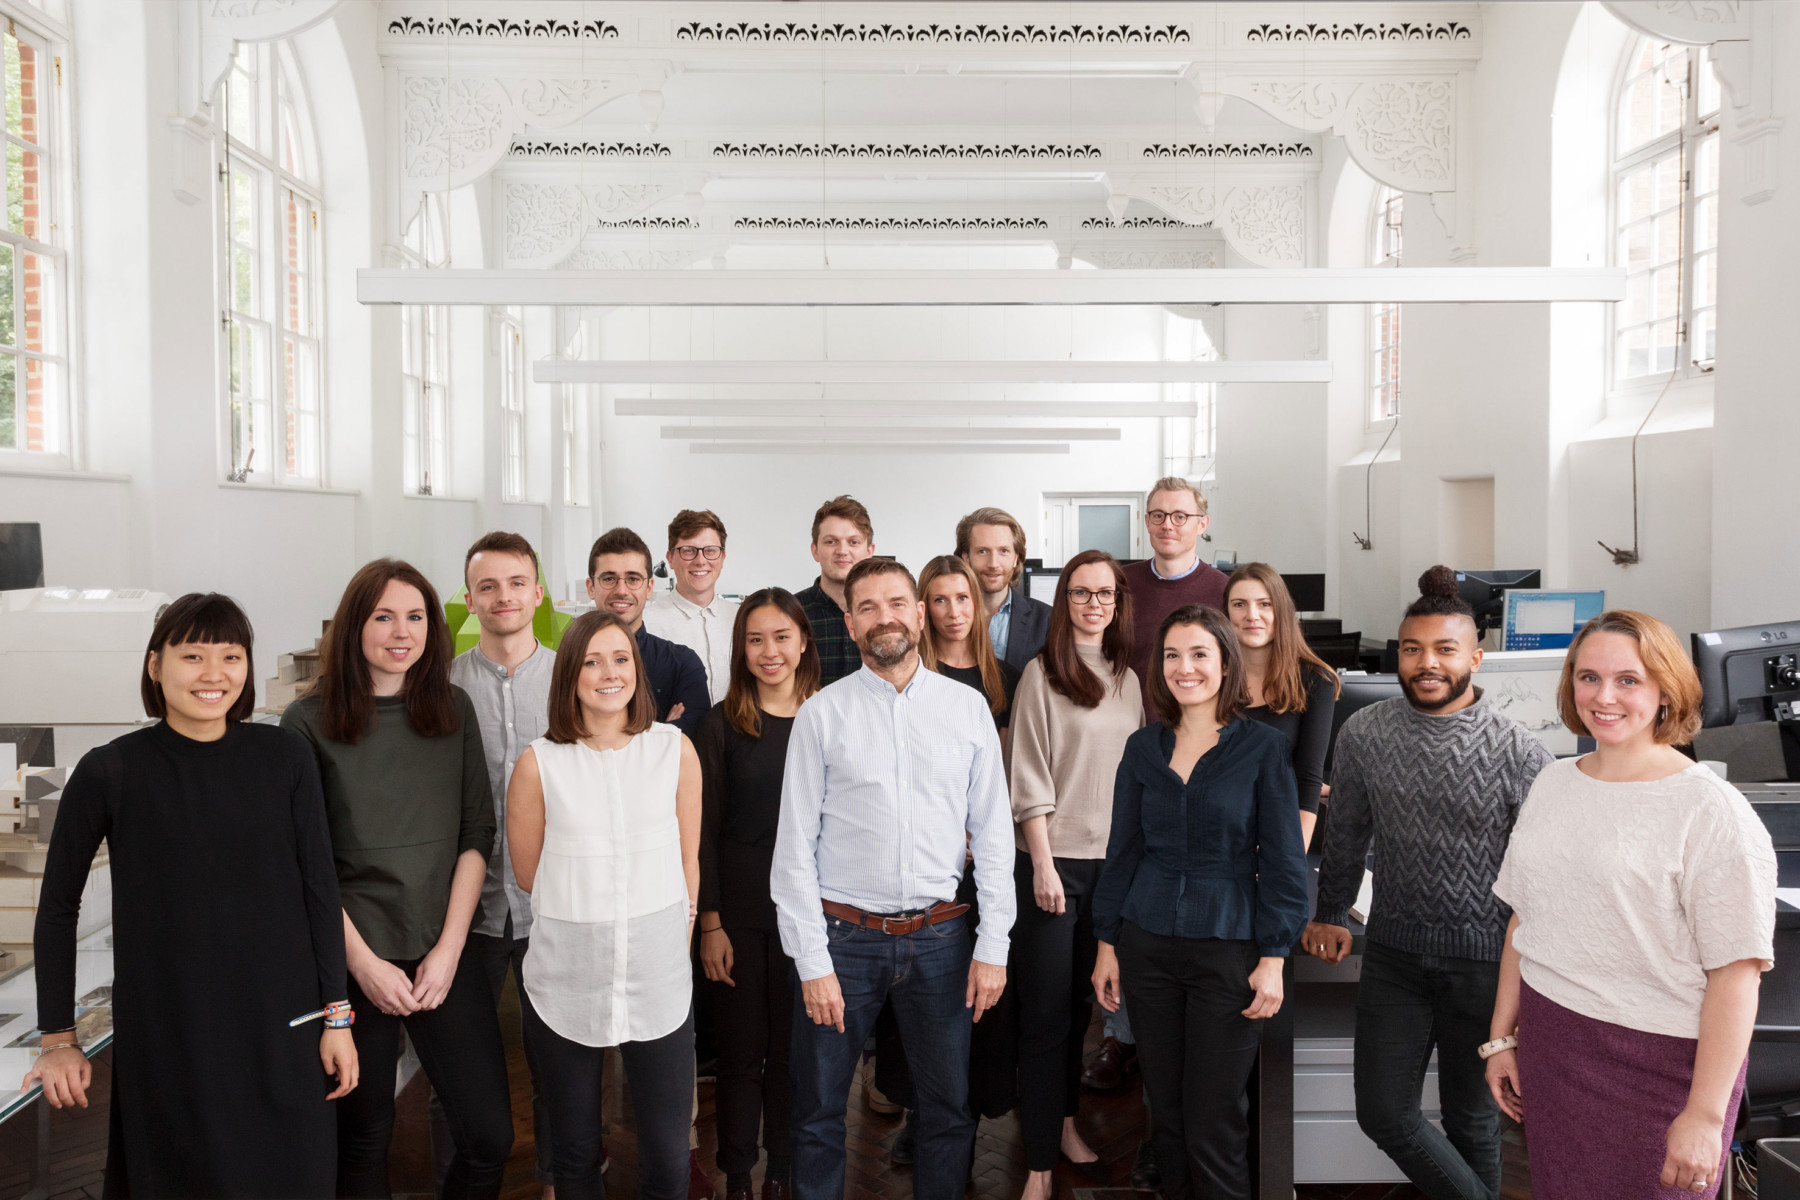 jamie-fobert-architects-team-photo-london-office